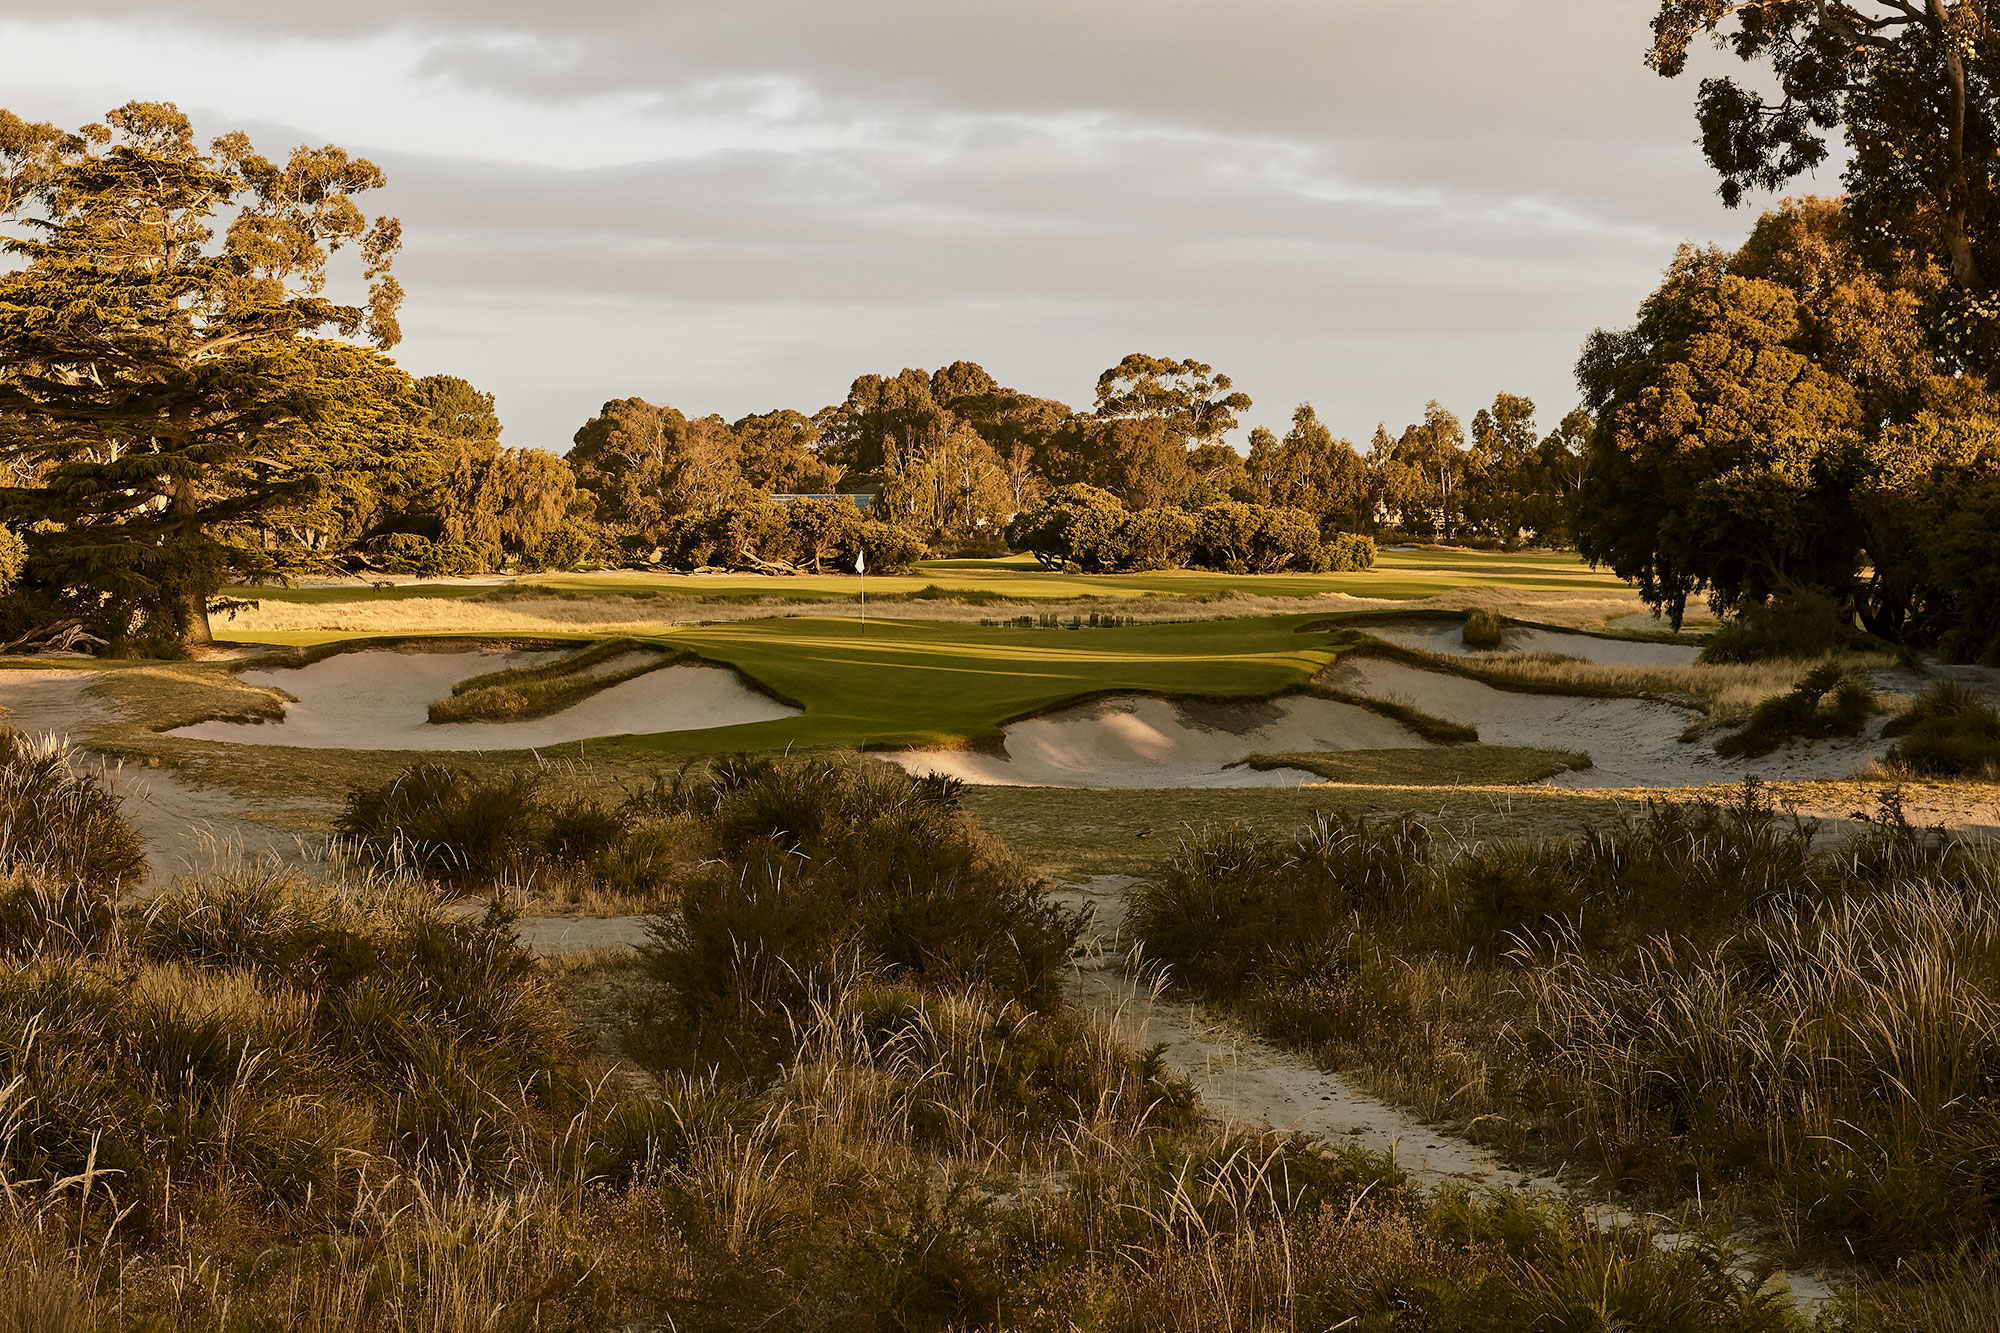 Kingston Heath Golf Club - Stephen Denton Photography, Los Angeles, California based interior & hospitality photographer